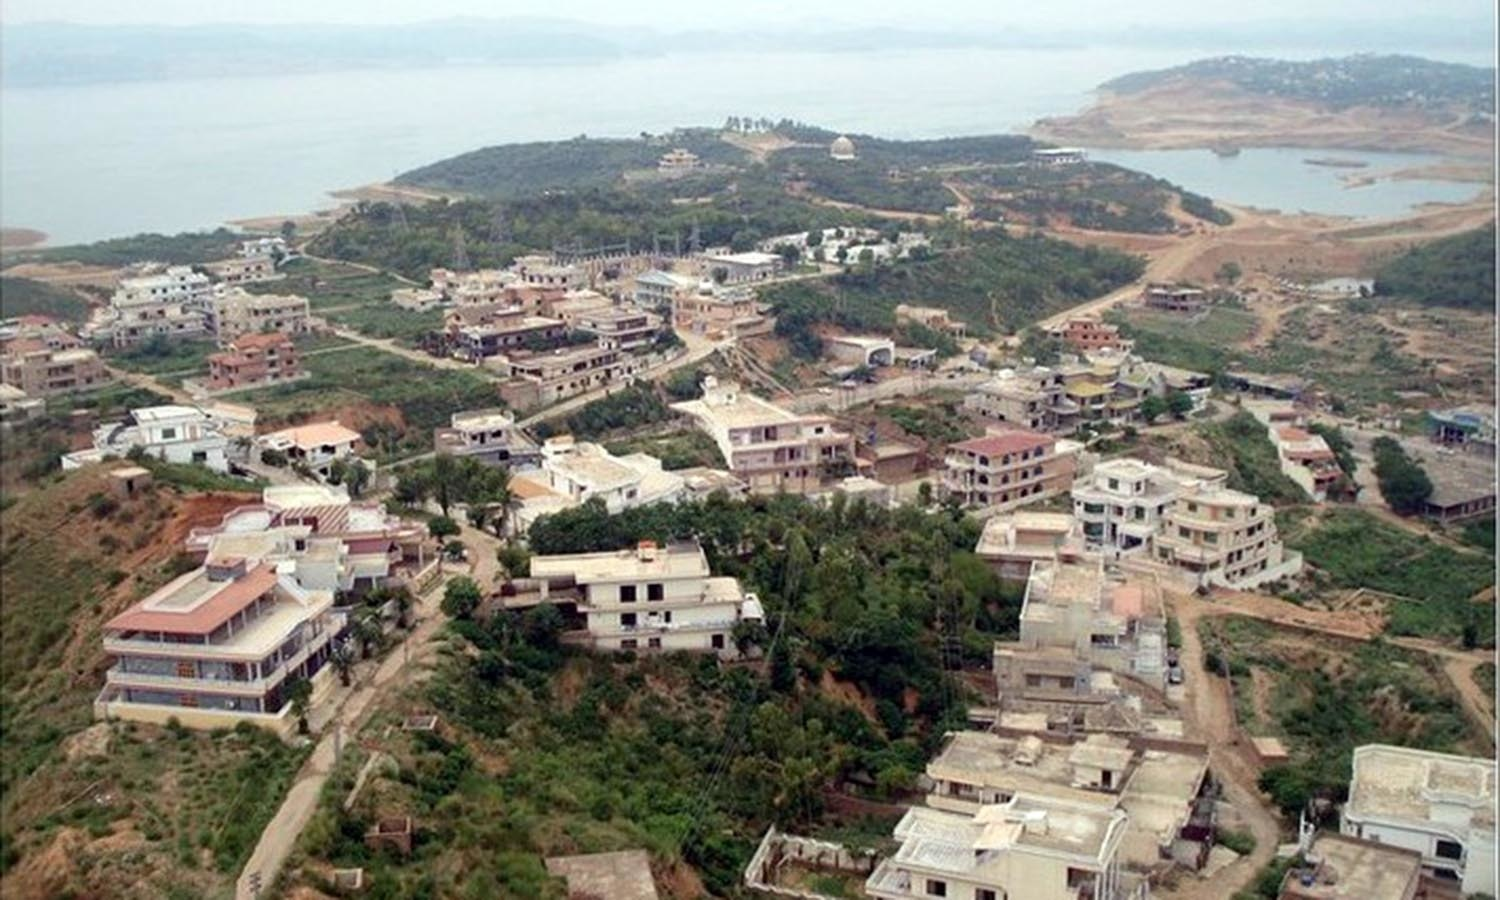 Mirpur in Azad Kashmir. Azad Kashmir is a self-governing administrative division of Pakistan.